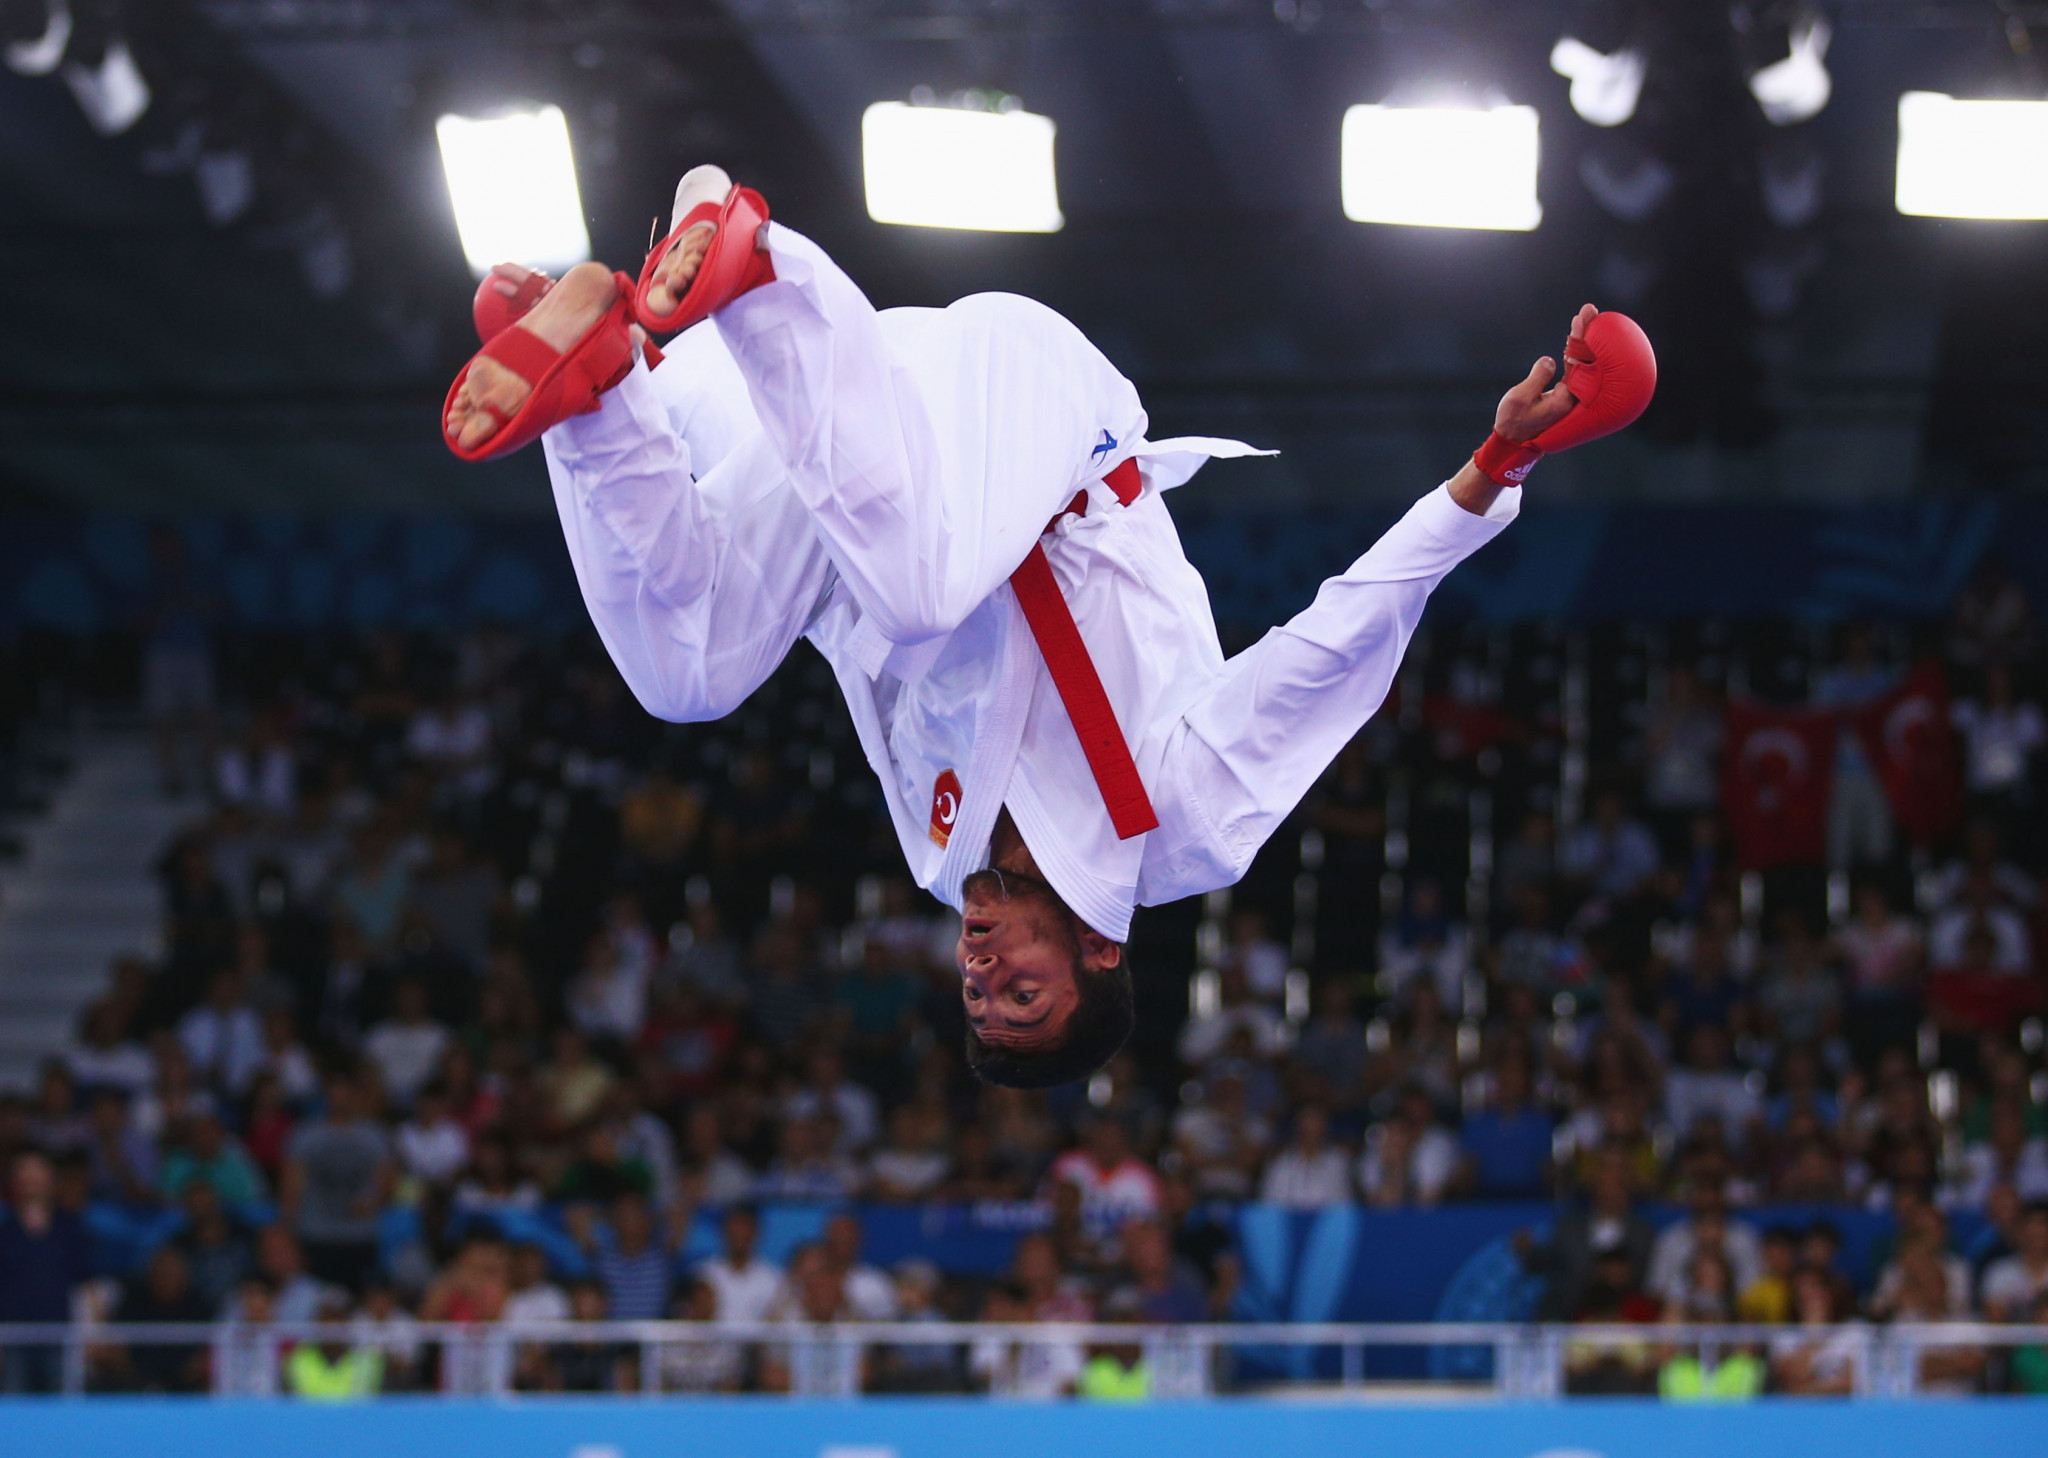 Burak Uygur reached the final of the male Kumite -67kg category against edging out Devid Nhuyen ©Getty Images